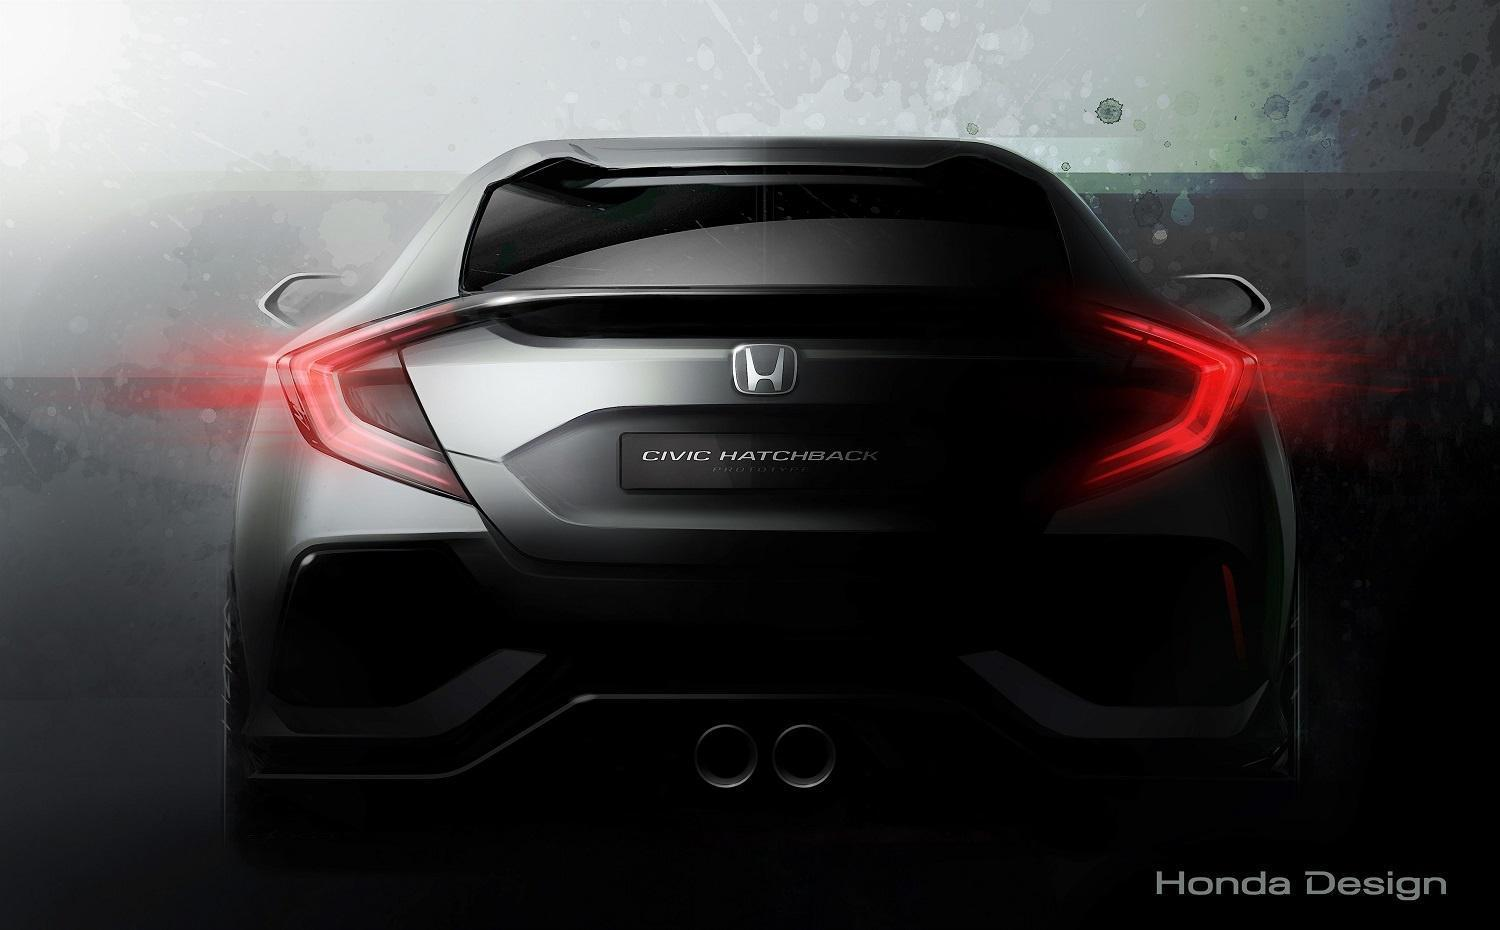 Hatch heaven: Honda's next concept will preview the first US-bound Civic hatchback